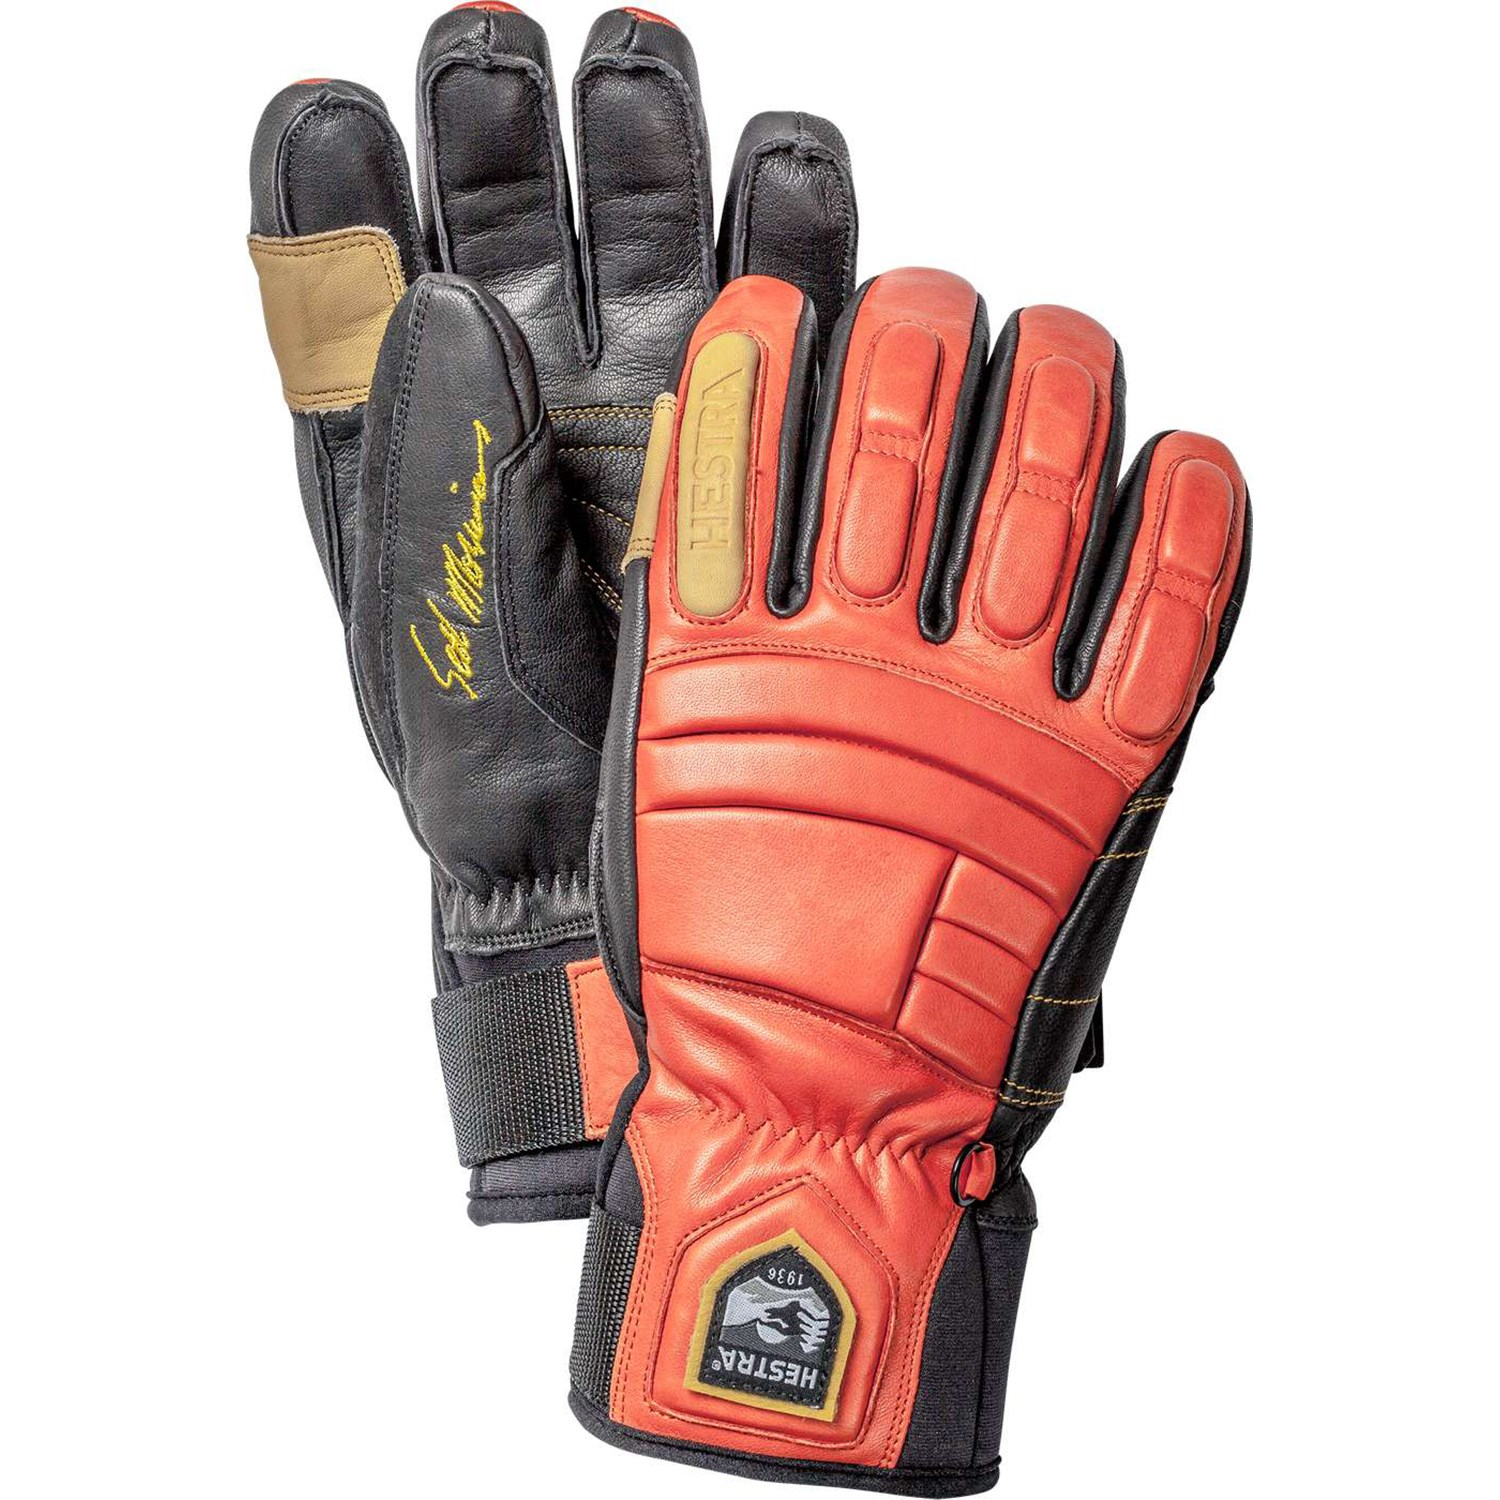 Hestra mens gloves - Hestra Mens Gloves 46